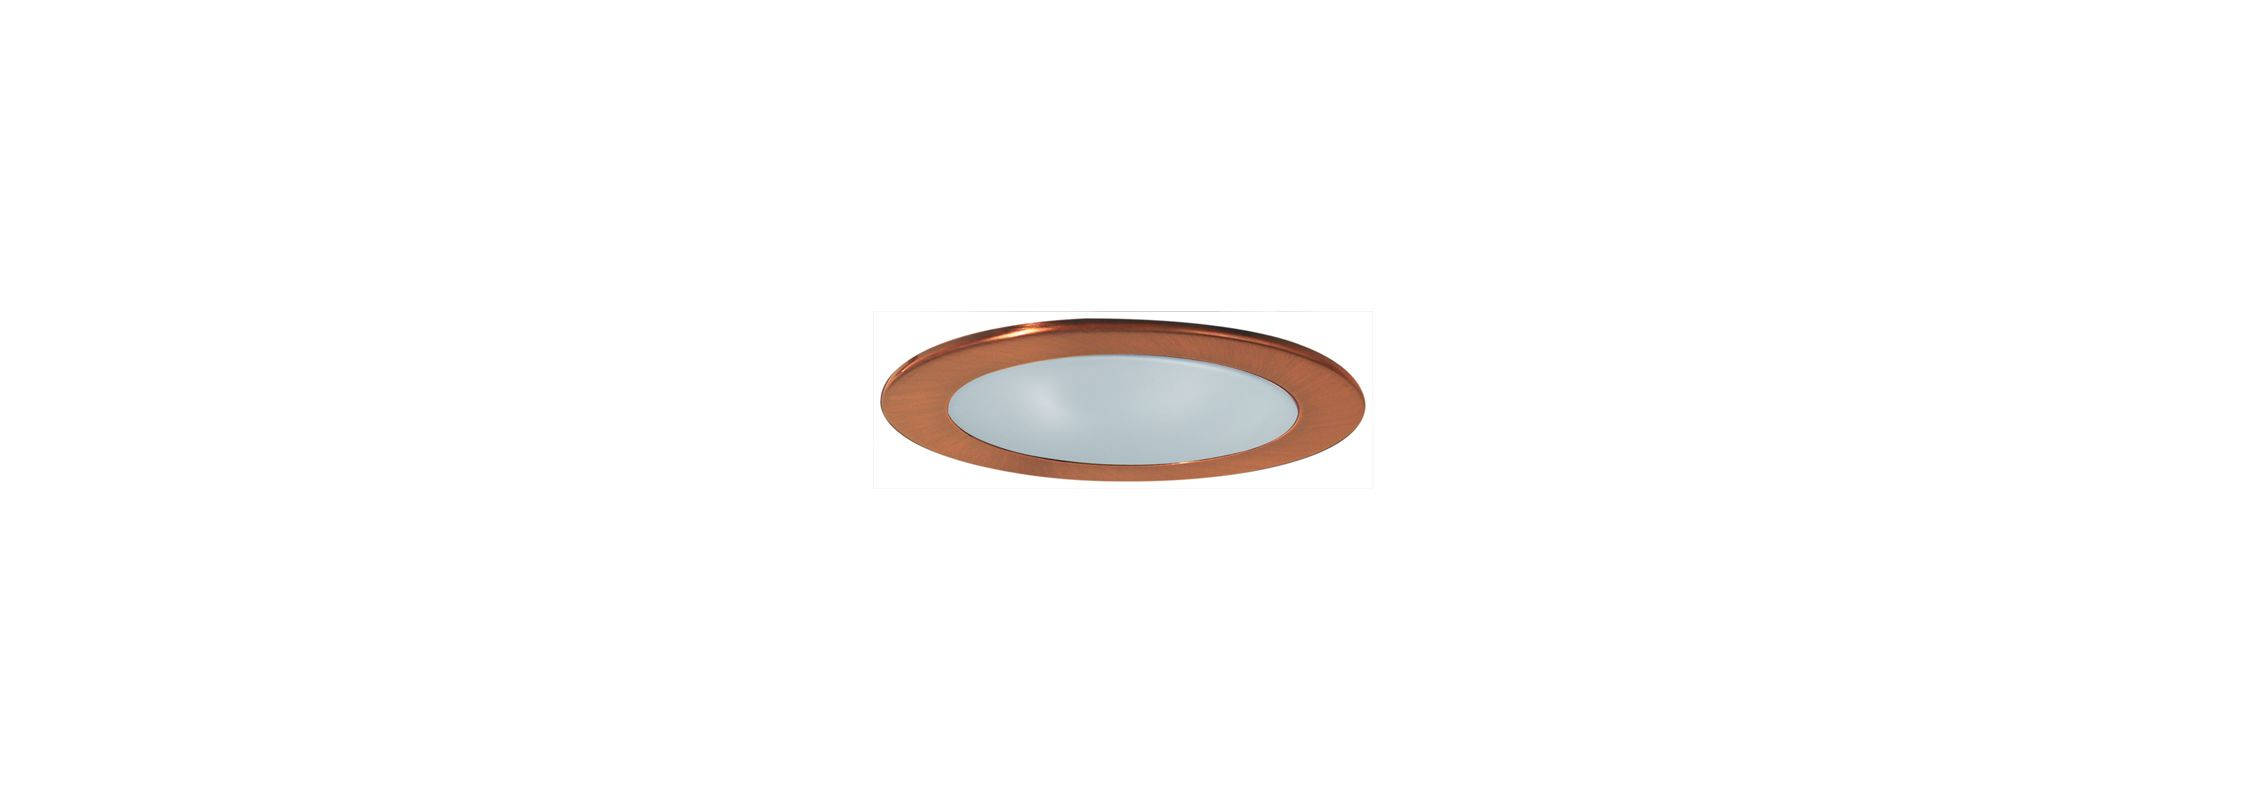 "Elco EL9112 4"" CFL Shower Trim with Frosted Lens and Reflector Copper"